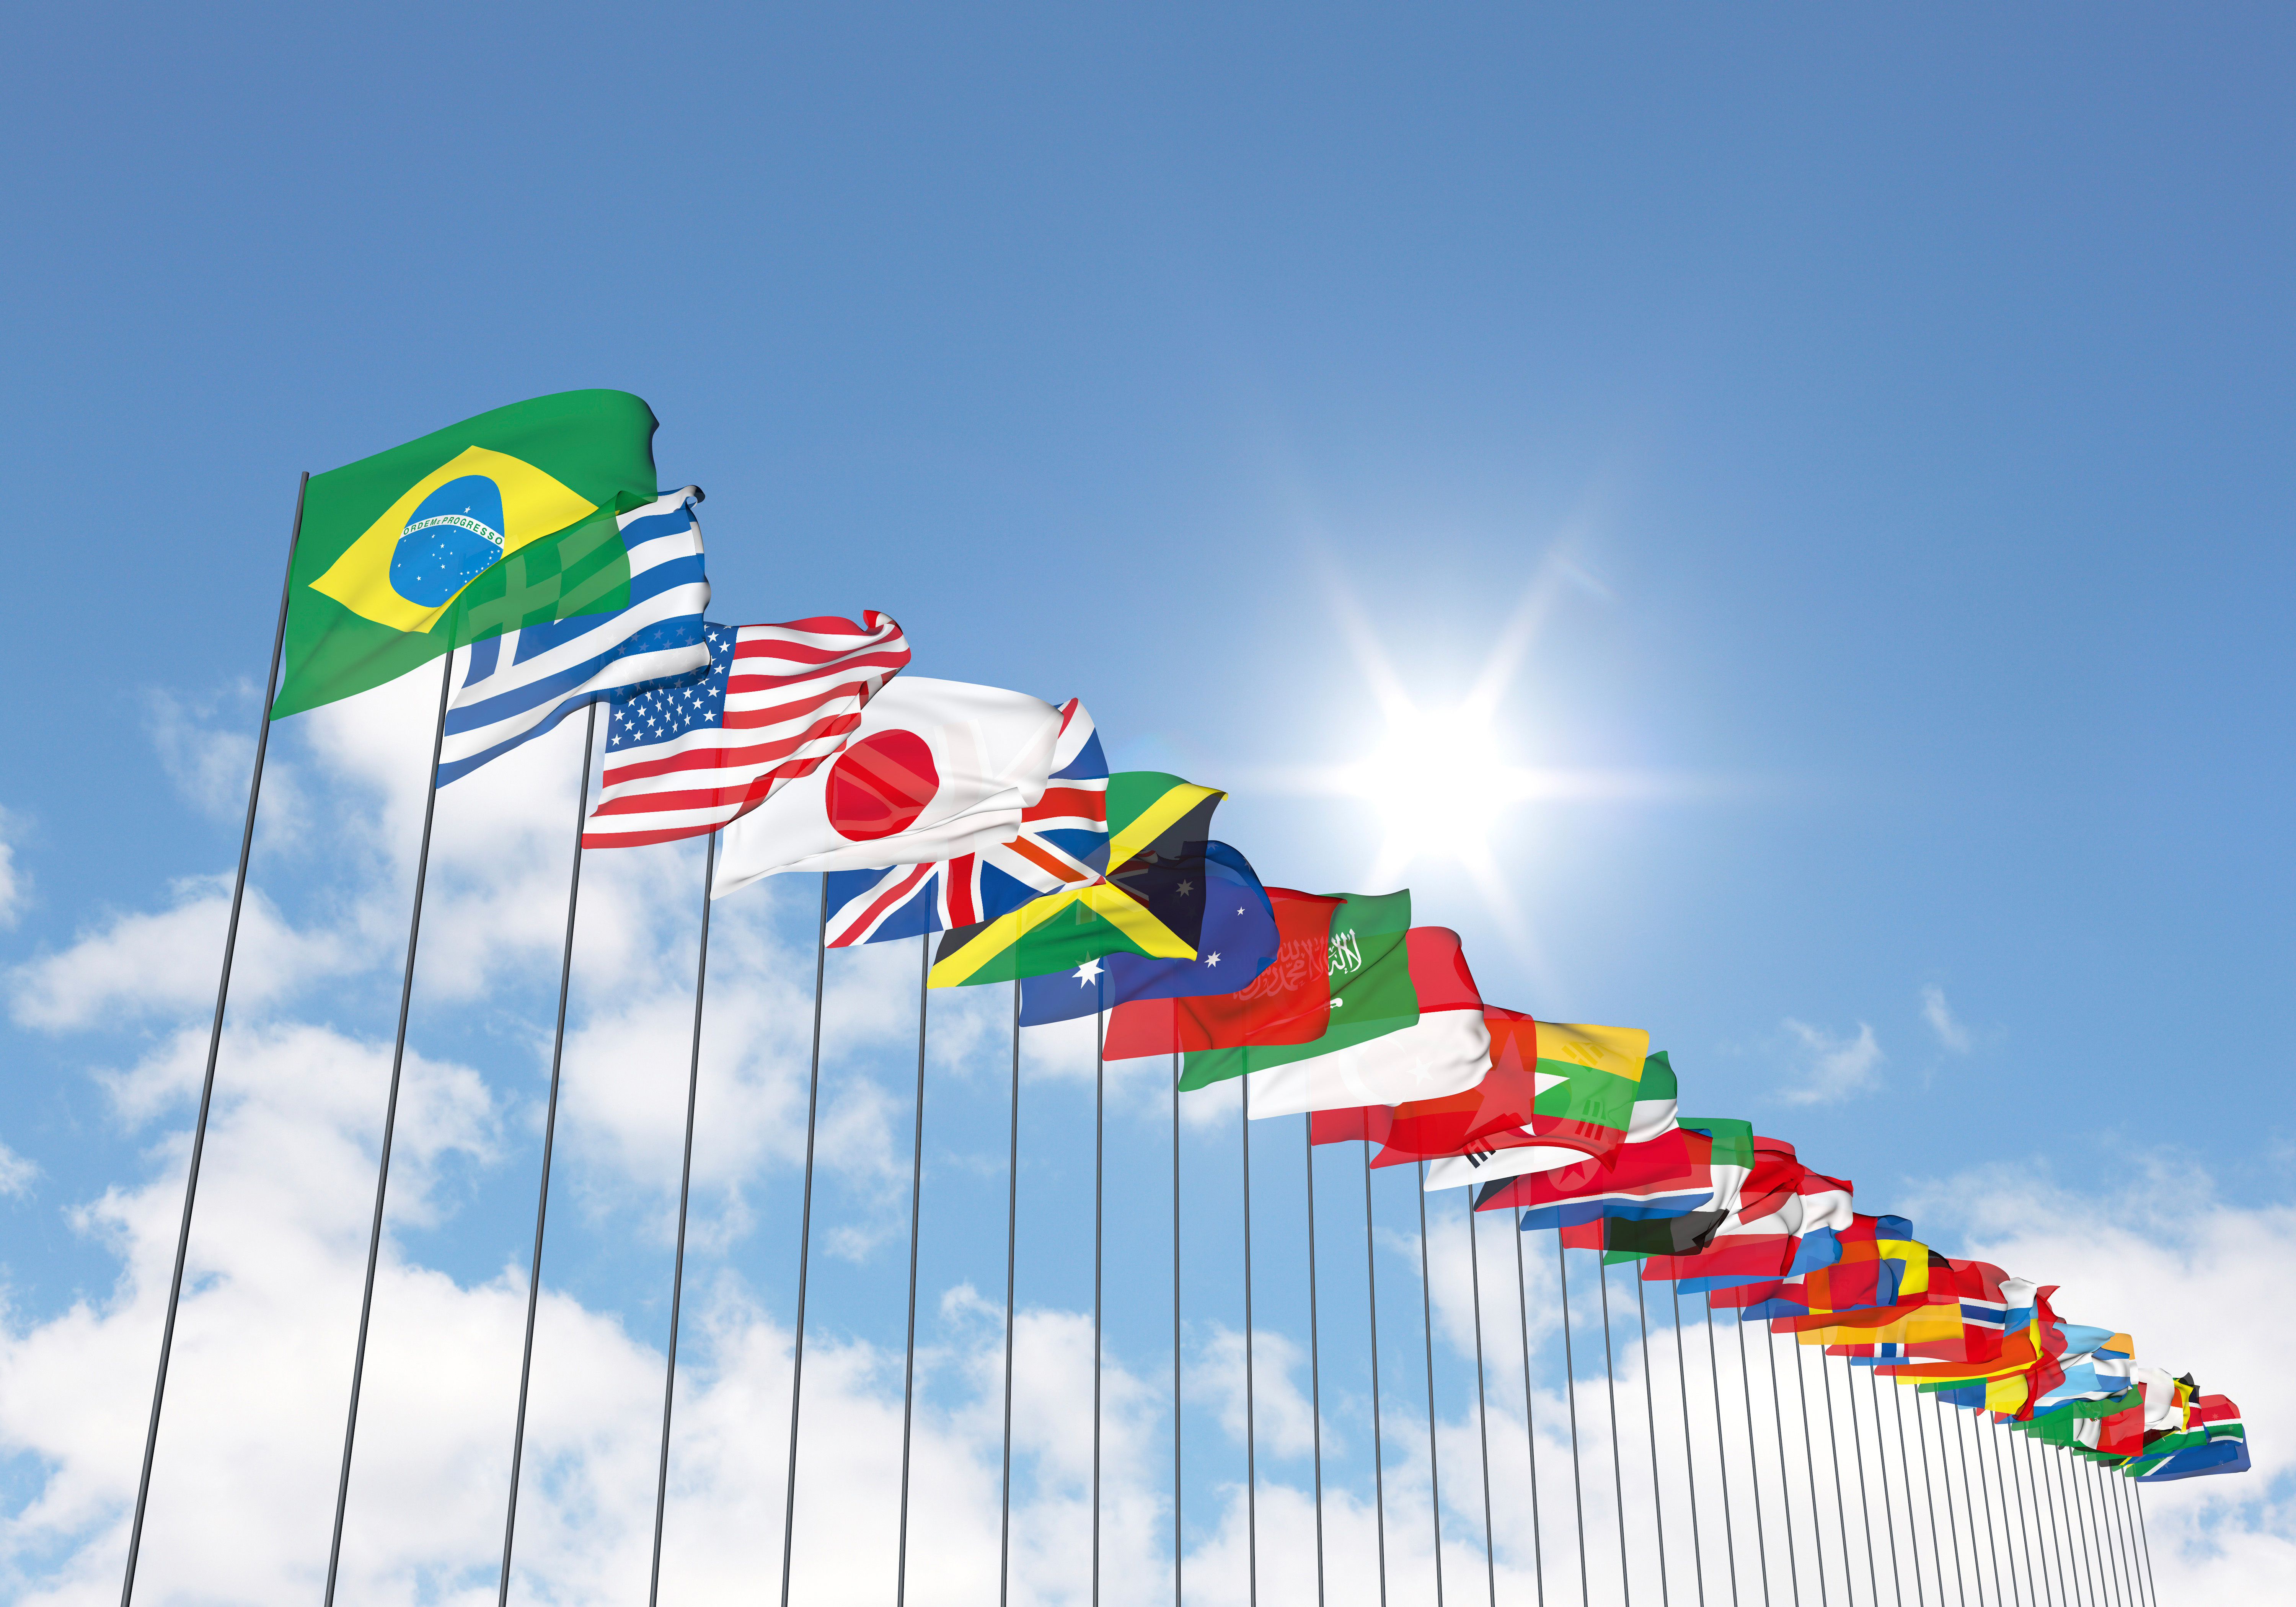 Flags of countries at 2021 Tokyo Olympics